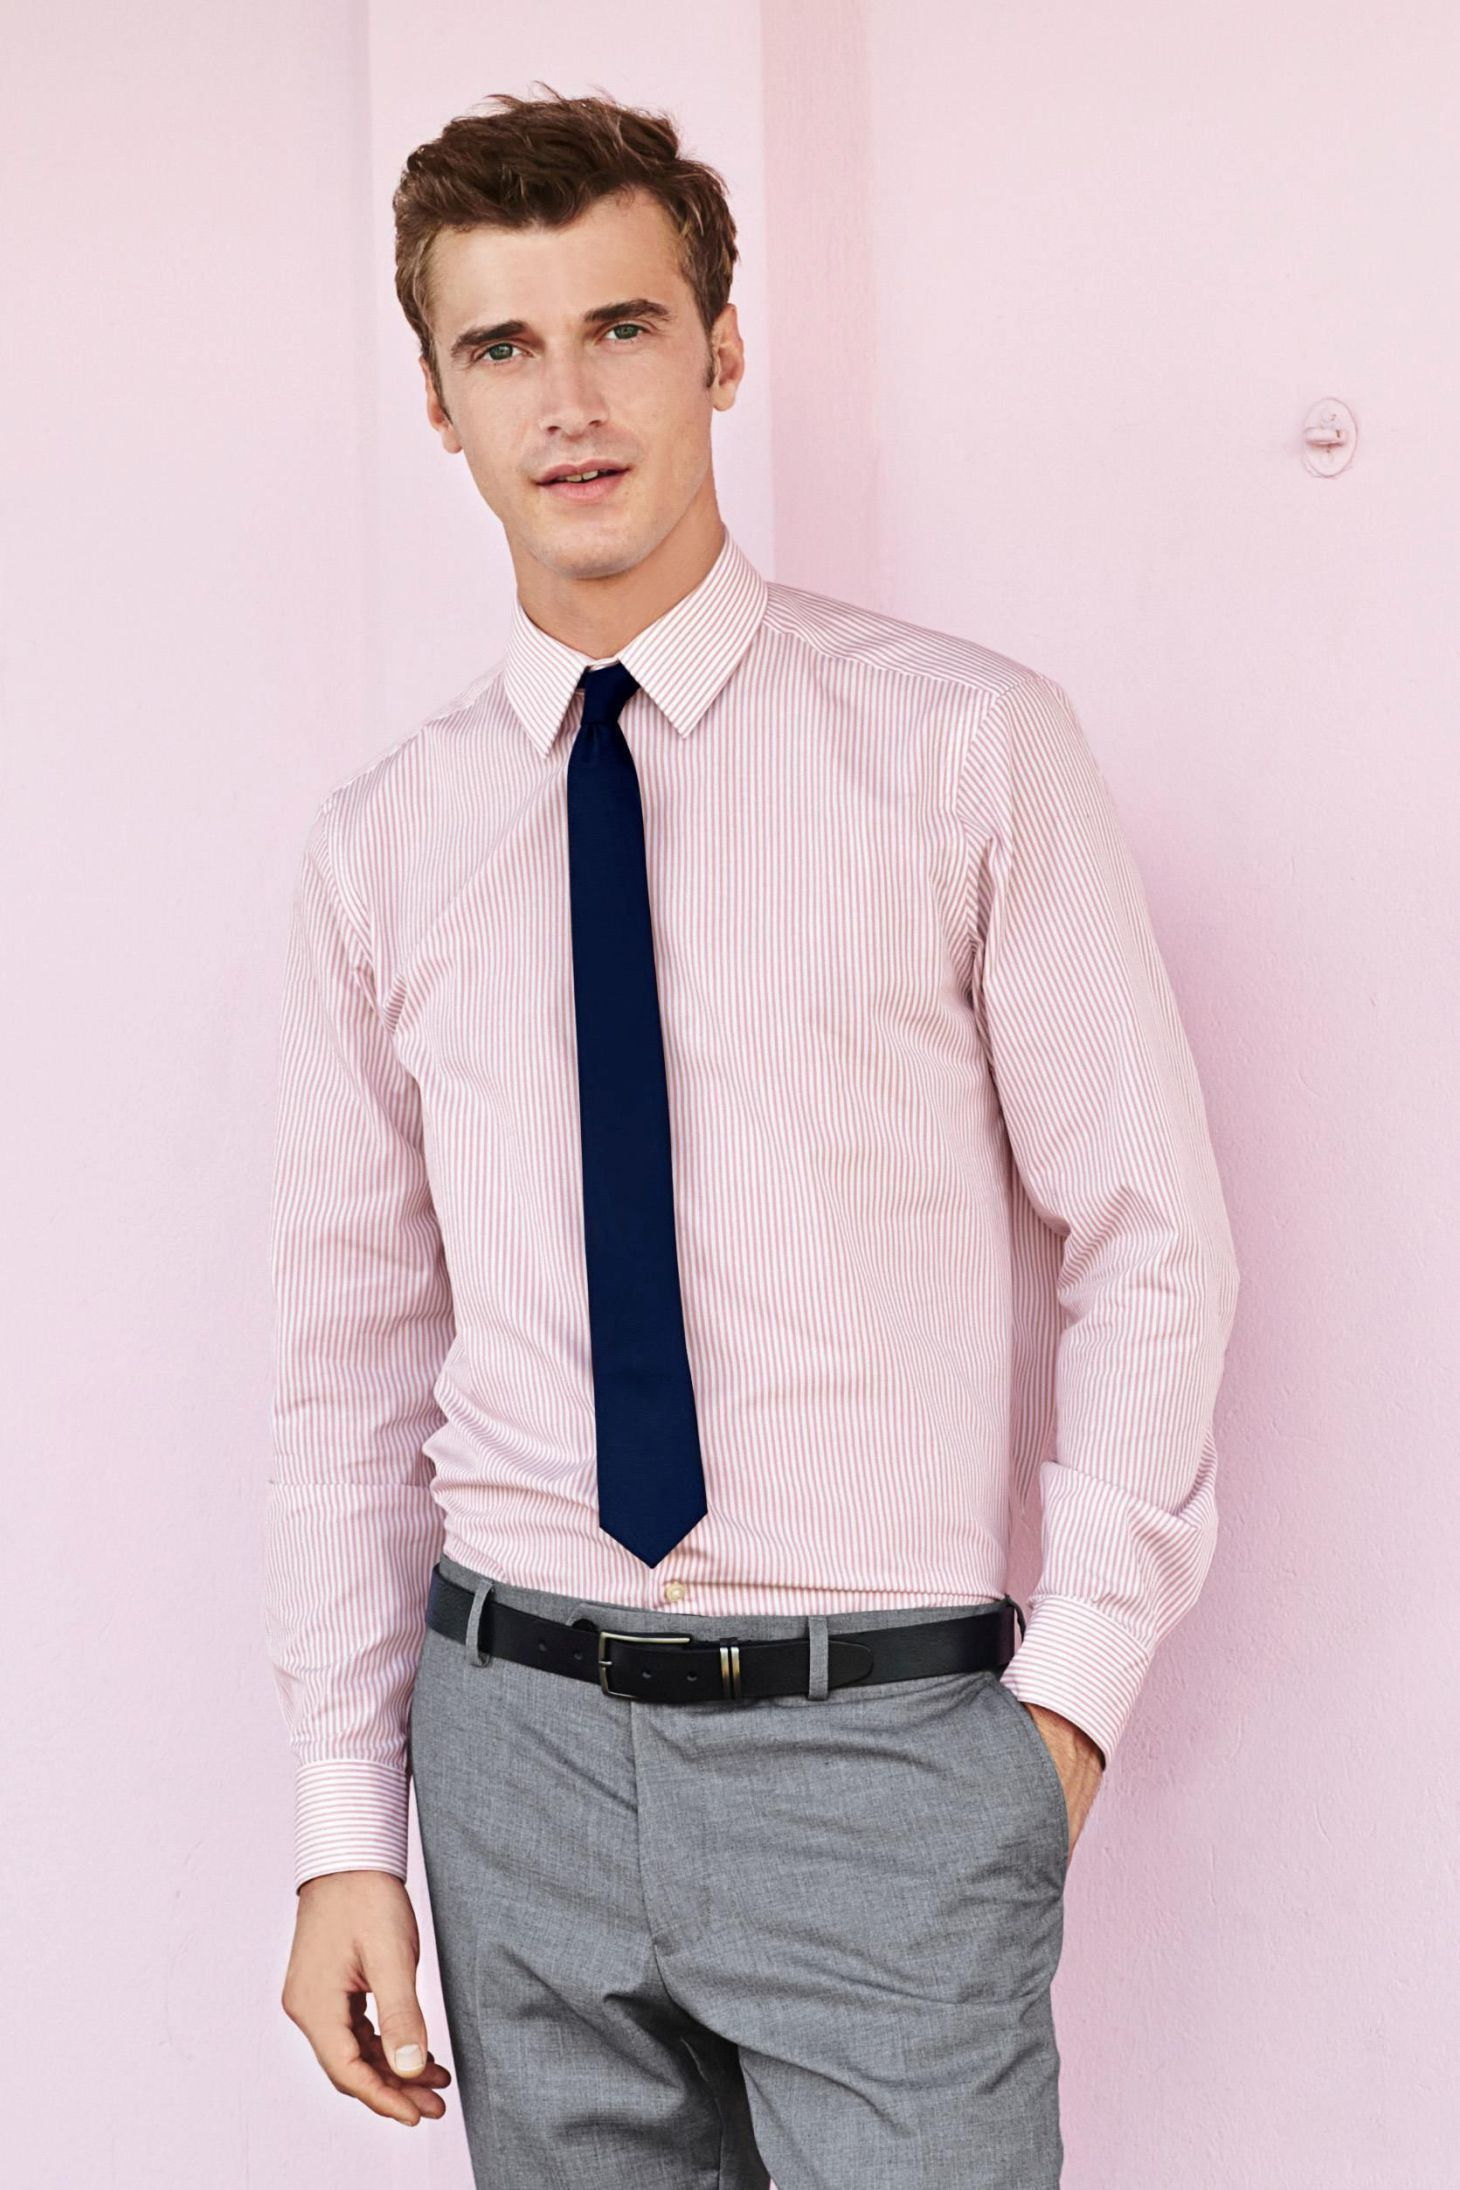 Men's Pink Vertical Striped Dress Shirt, Grey Dress Pants, Navy ...